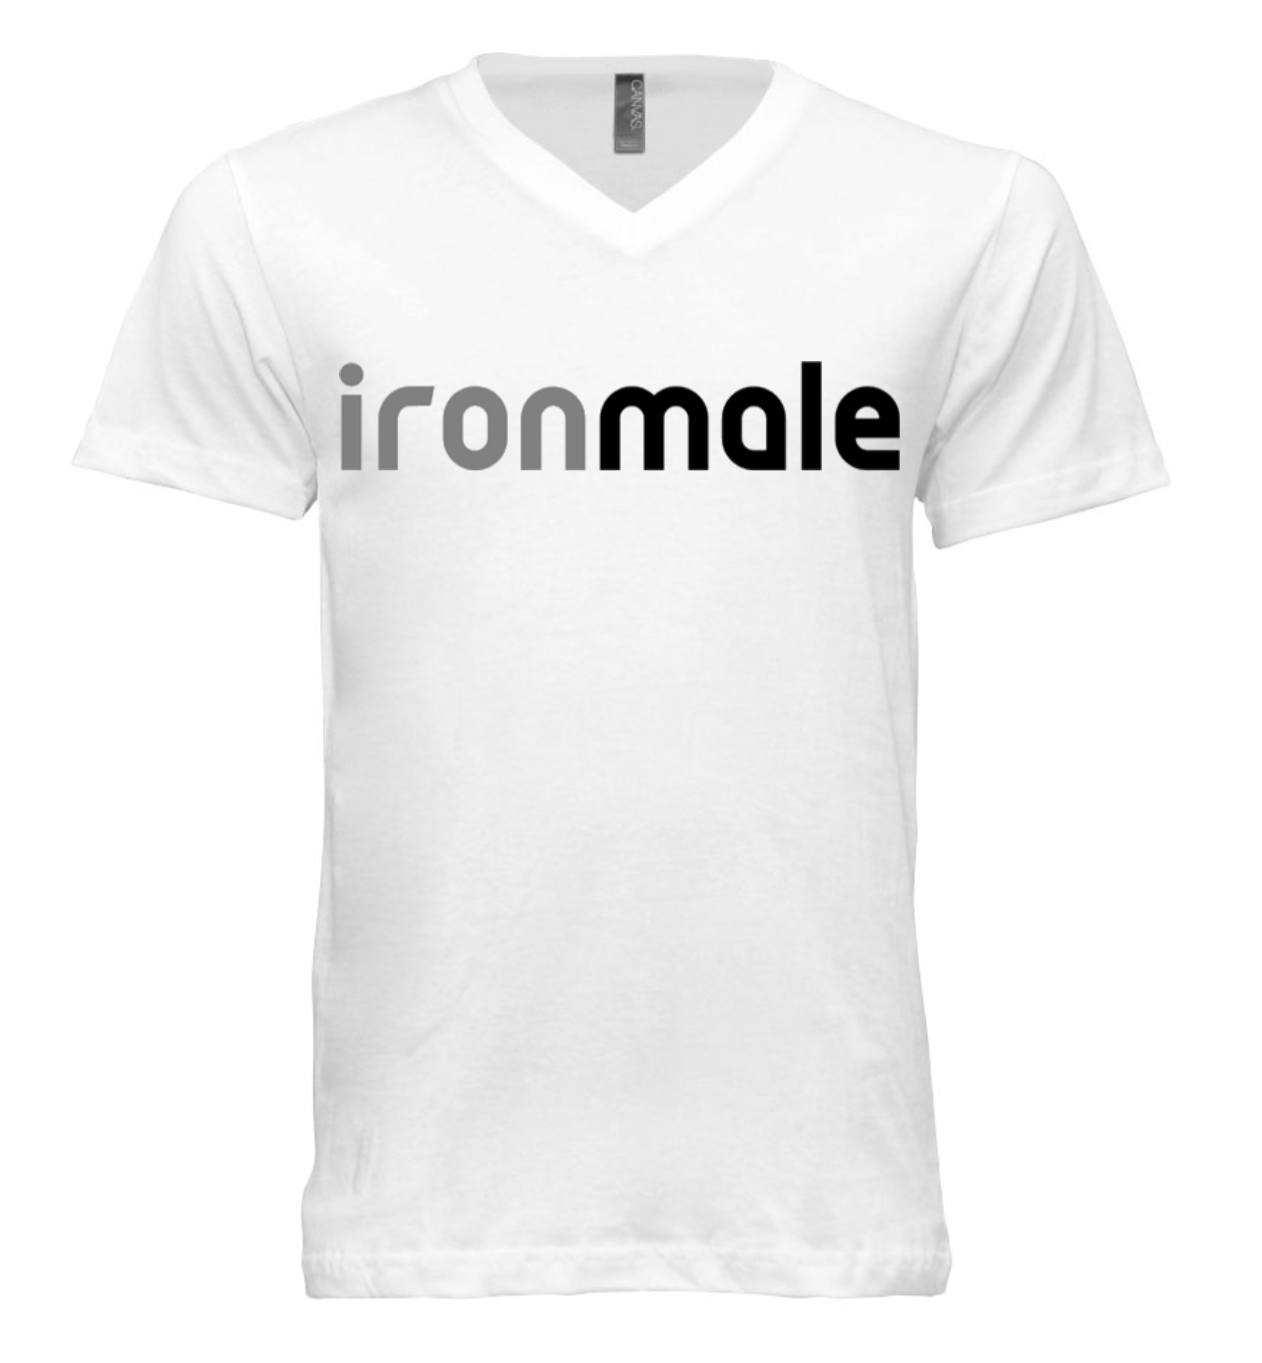 ironmale: clothing brand for the future